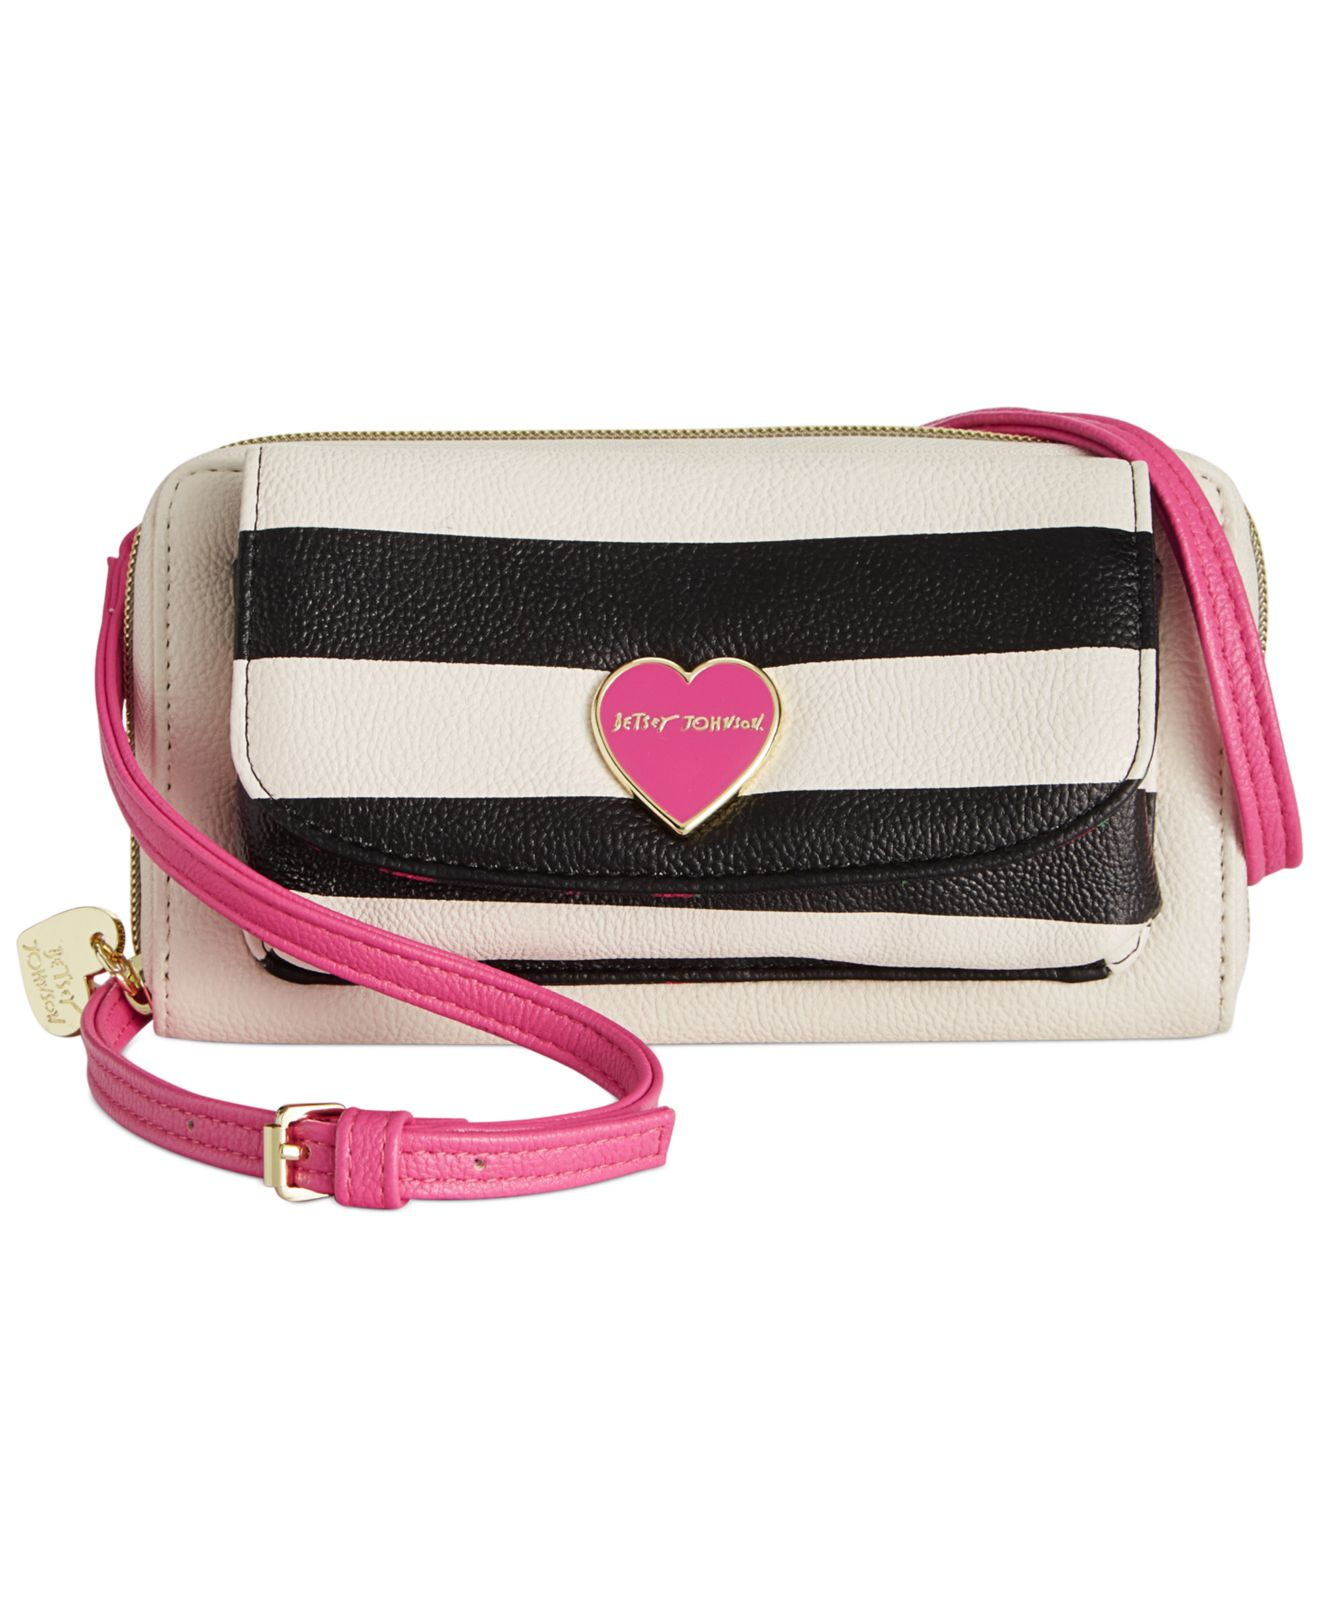 585101a58878 Lyst - Betsey Johnson Macy's Exclusive Wallet On A String Crossbody ...